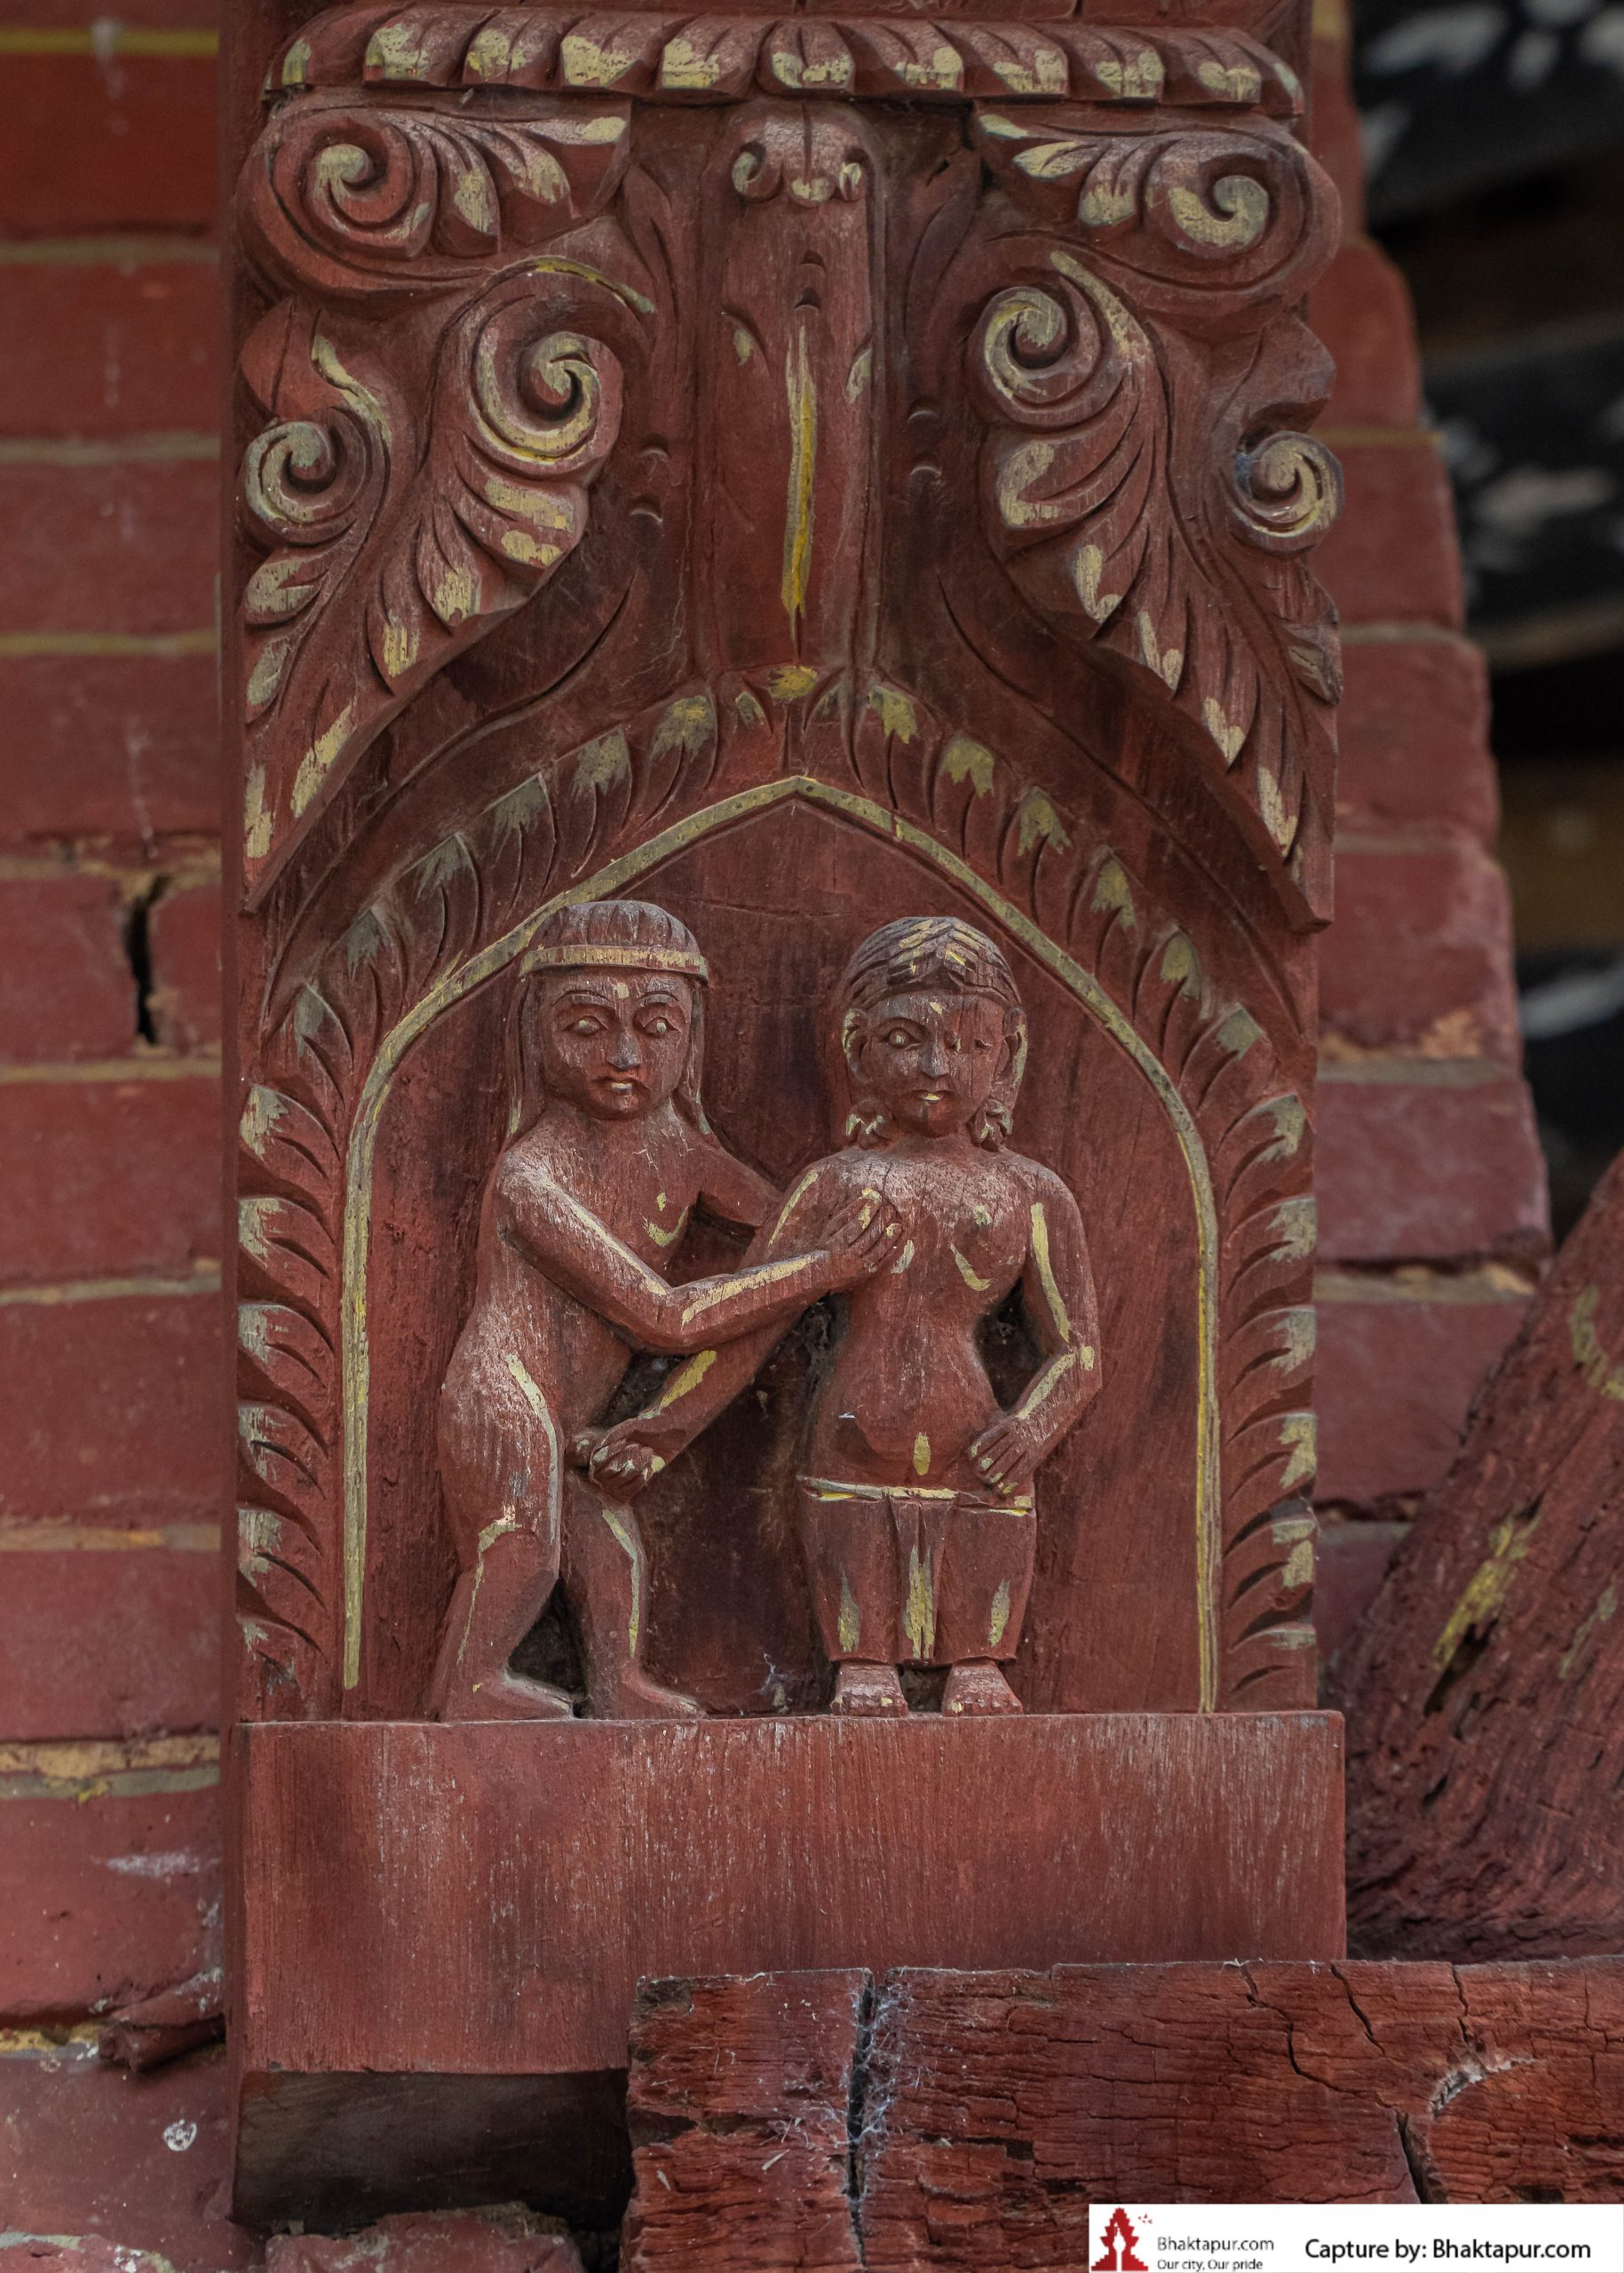 https://www.bhaktapur.com/wp-content/uploads/2021/08/erotic-carving-56-of-137-scaled.jpg